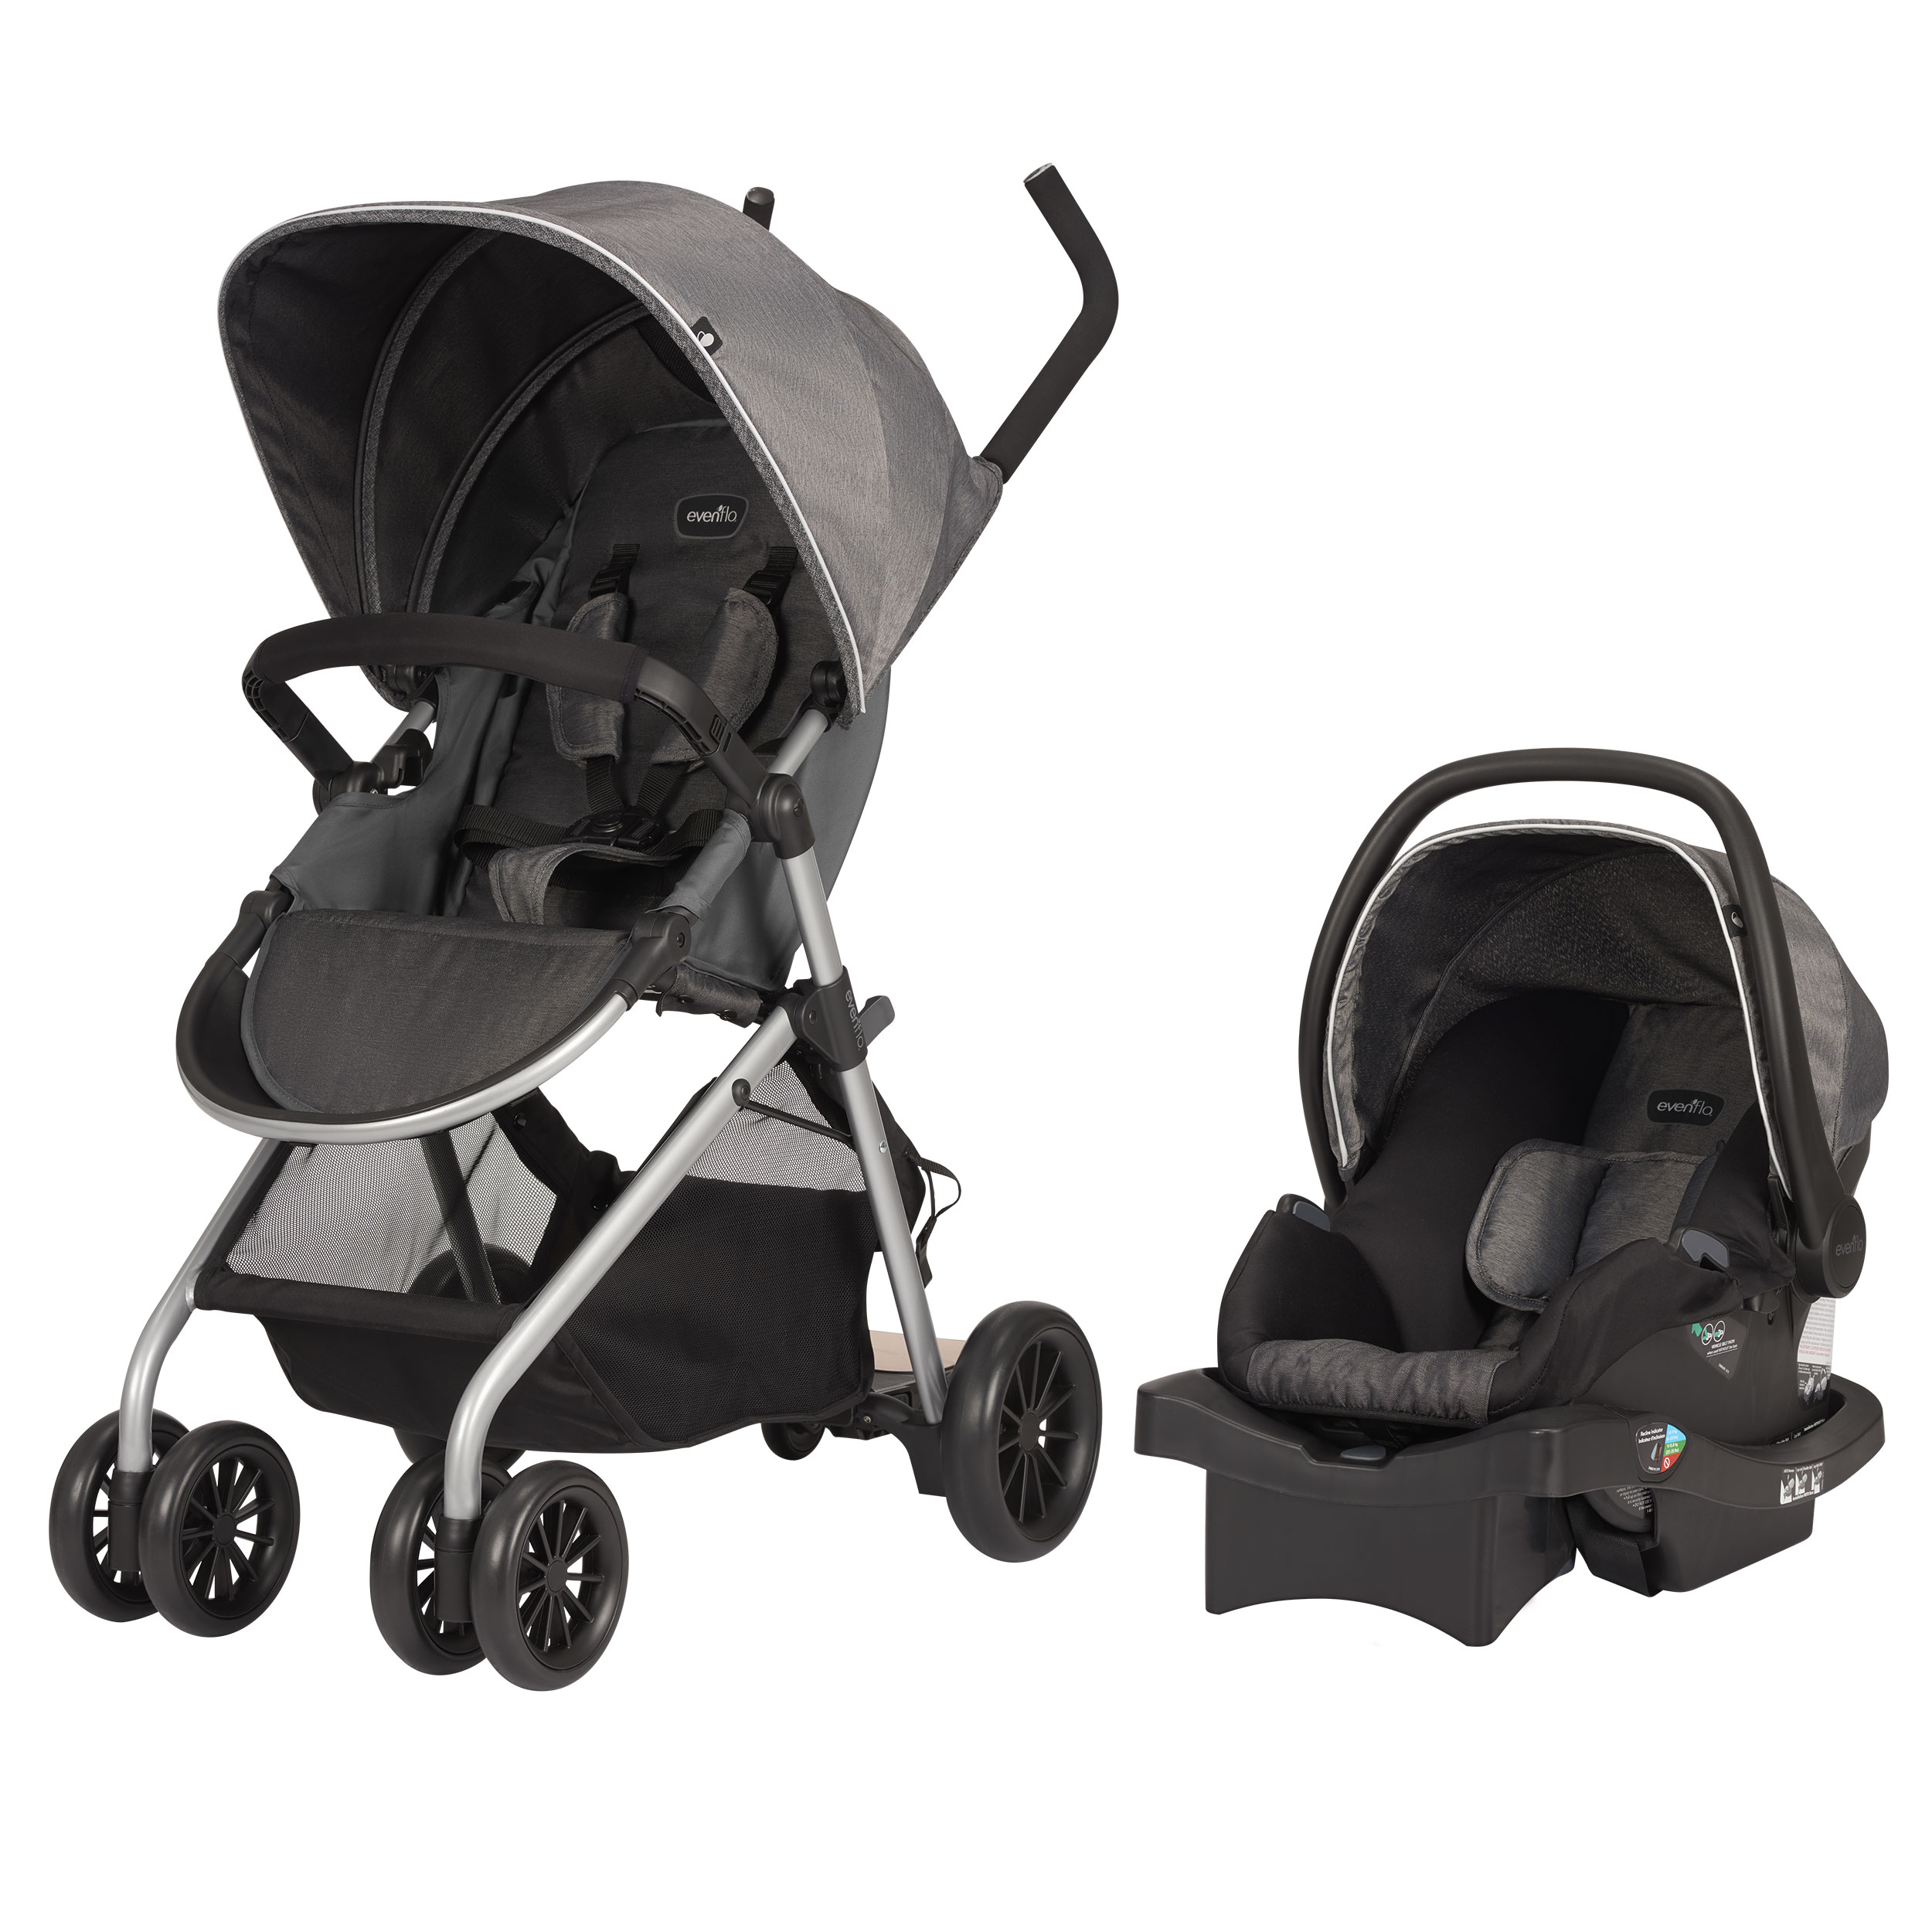 Urbini Omni Plus 3-in-1 Travel System